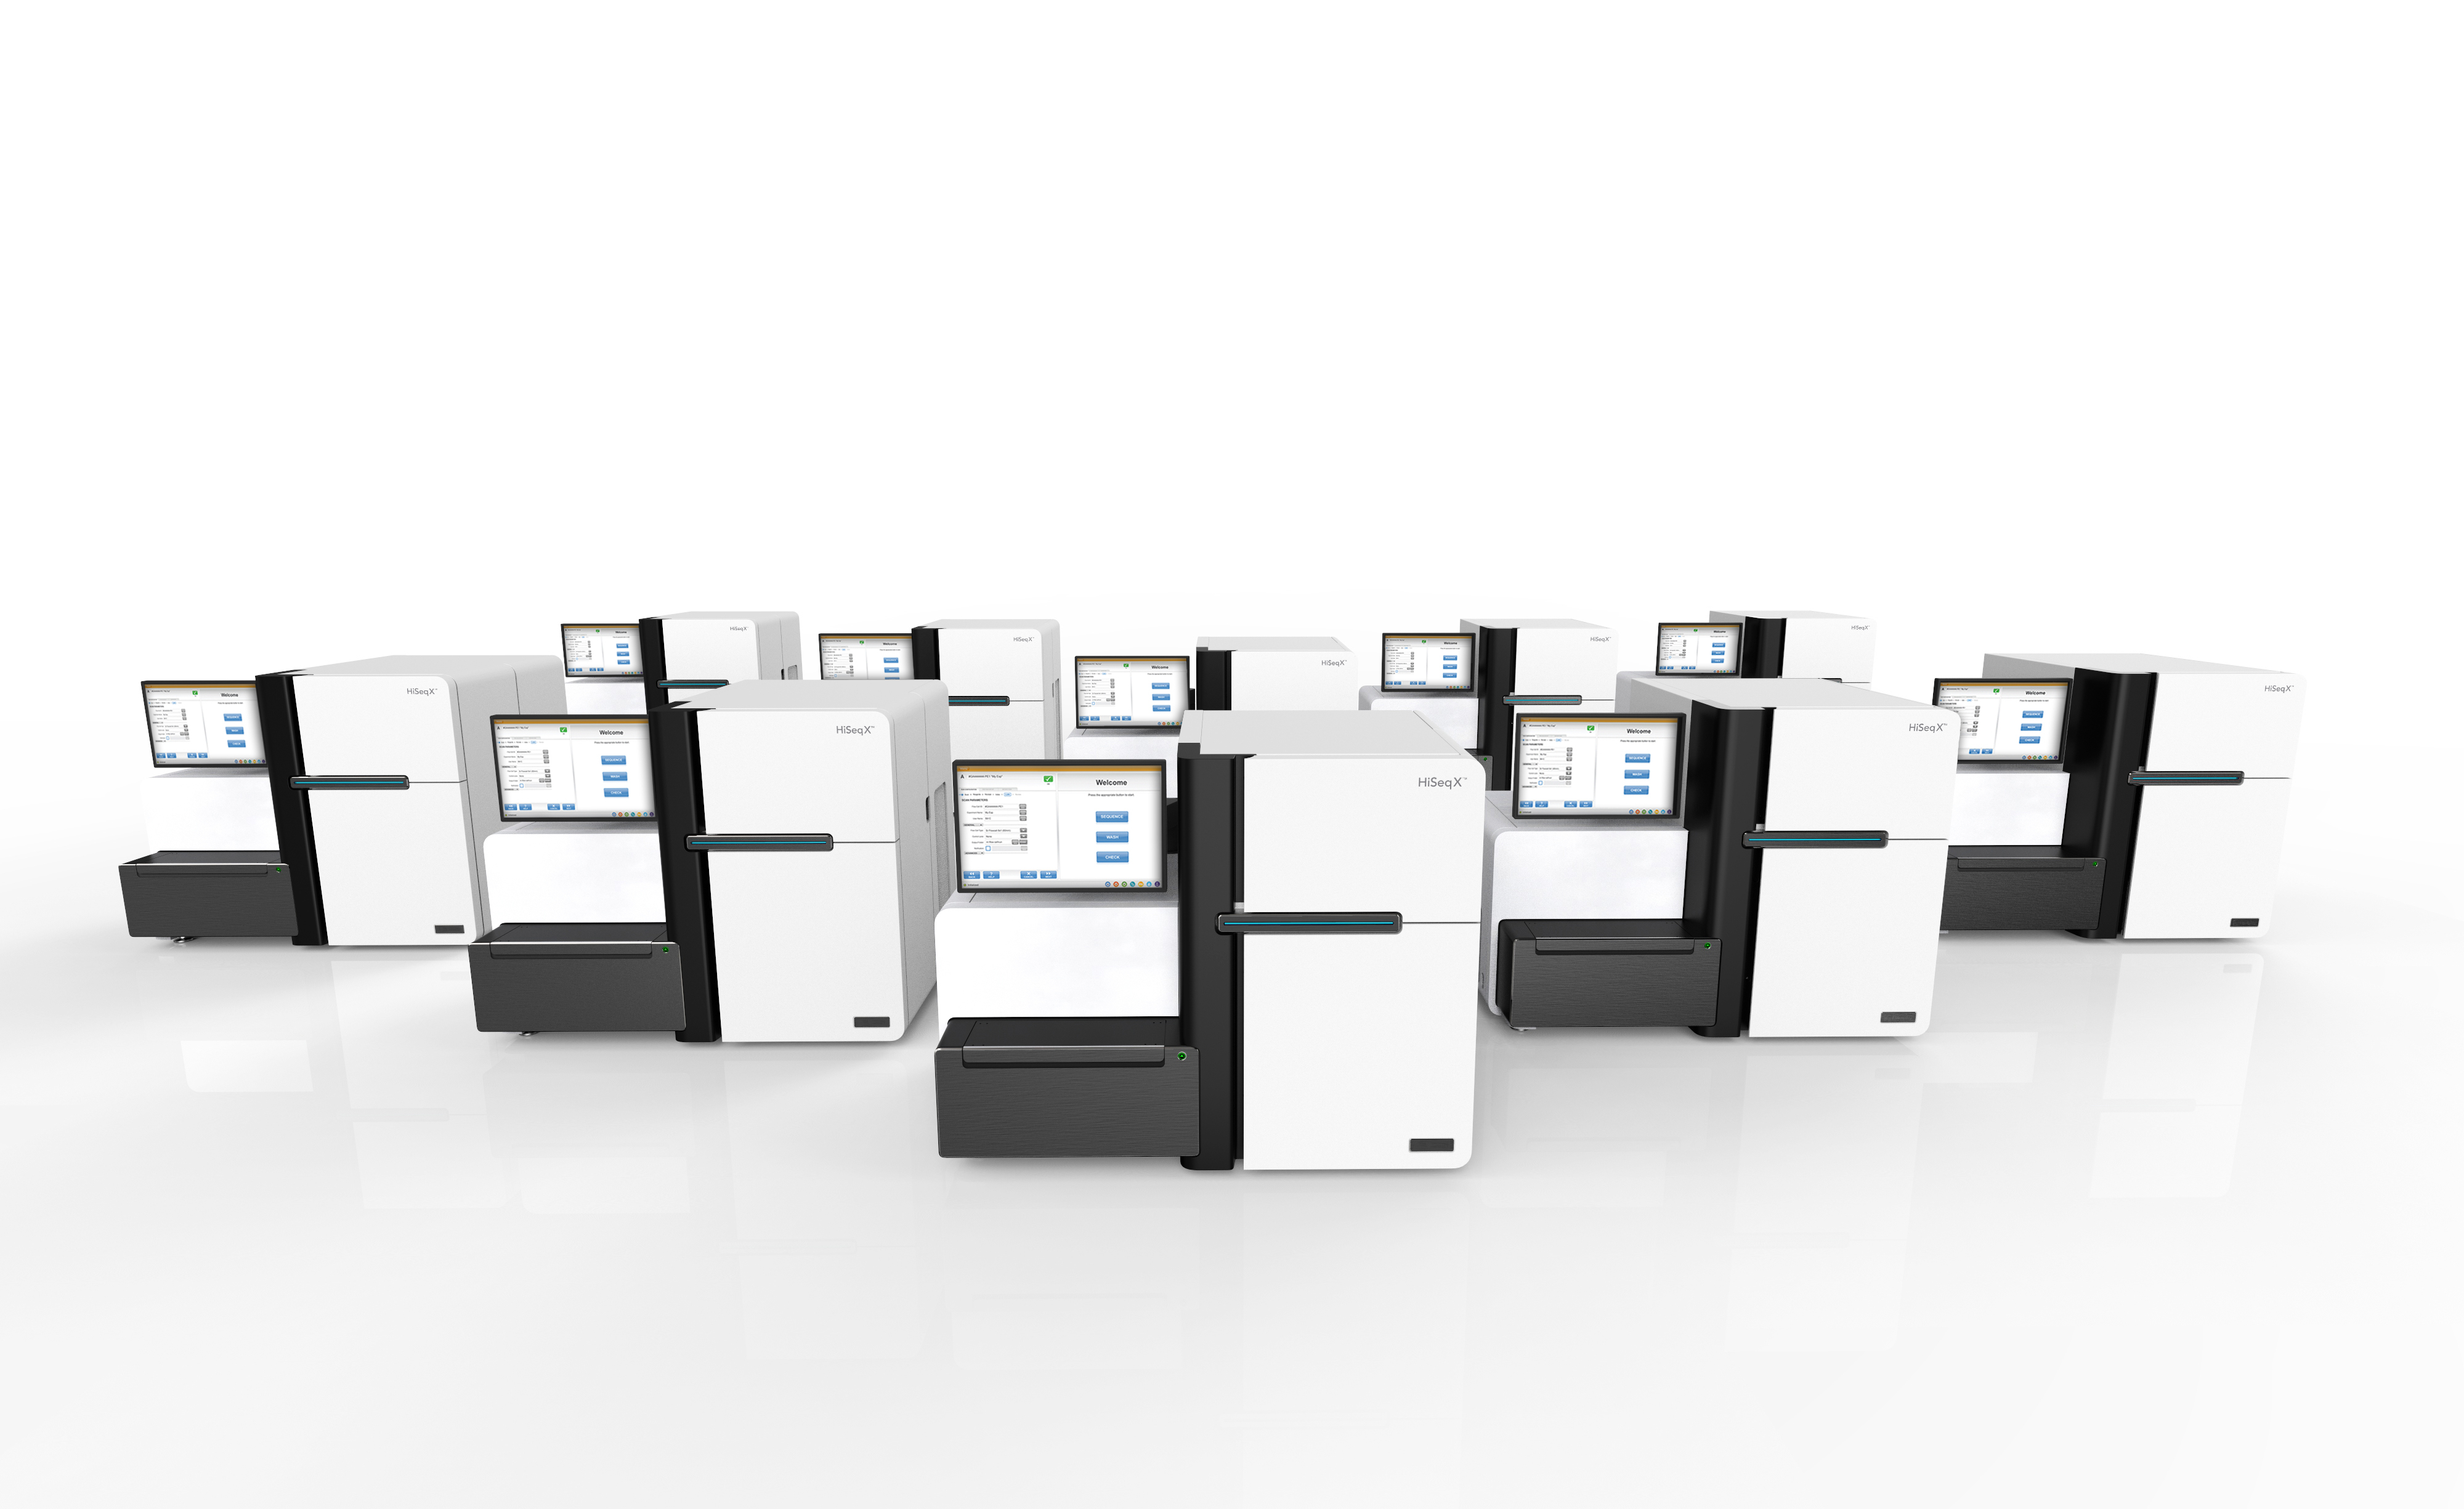 The HiSeq X™ Ten, composed of 10 HiSeq X Systems, is the first sequencing platform that breaks the $1000 barrier for a 30x human genome. The HiSeq X Ten System is ideal for population-scale projects focused on the discovery of genotypic variation to understand and improve human health. (Photo: Business Wire)